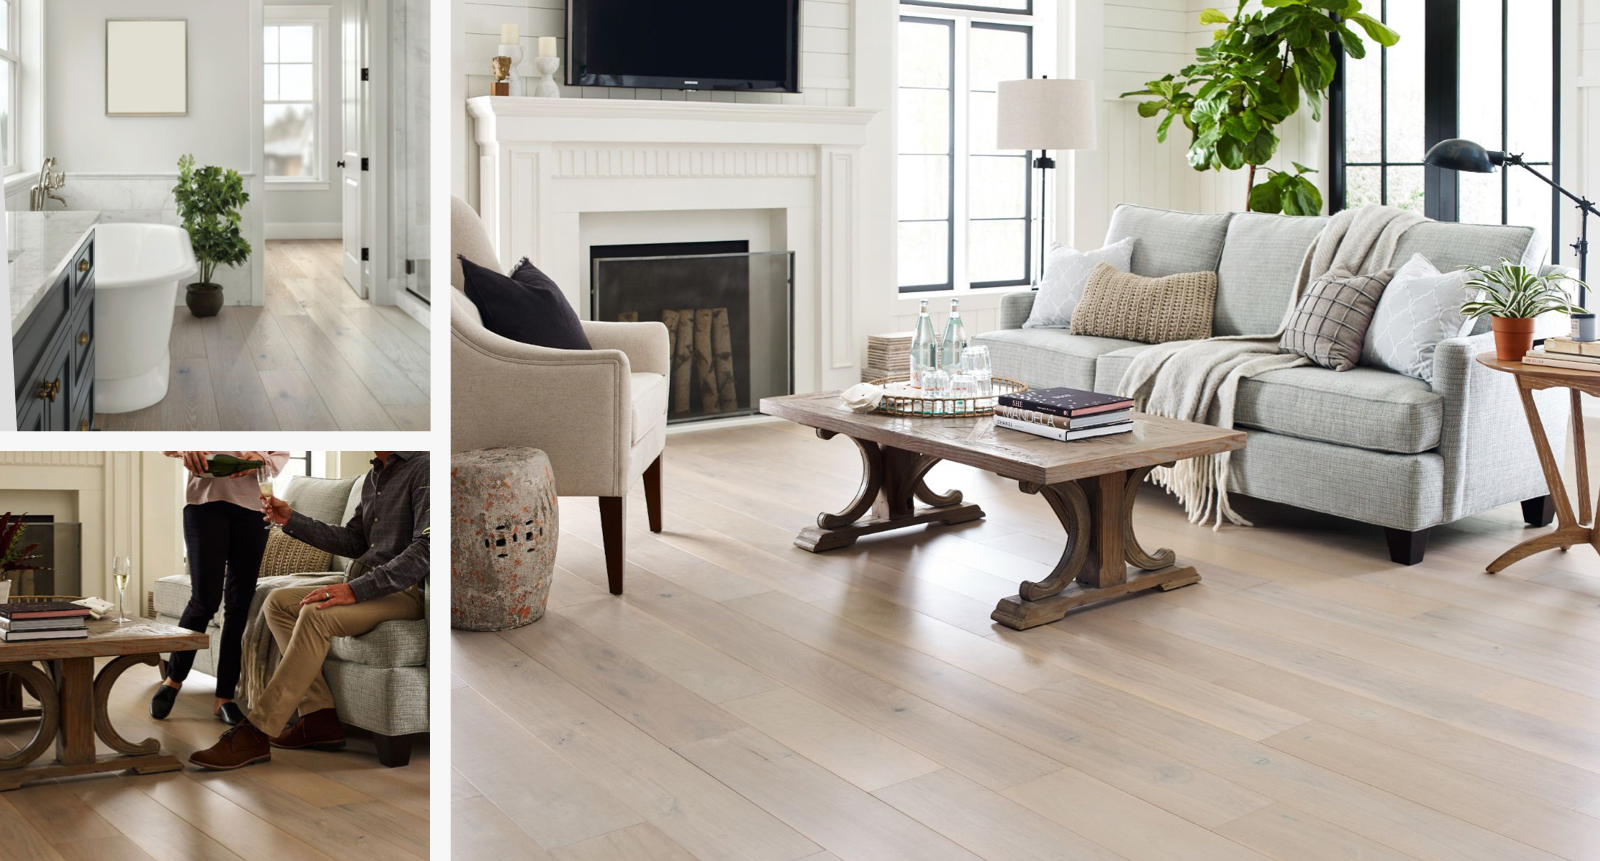 Floorte waterproof hardwood flooring for your home | Yetzer Home Furnishings